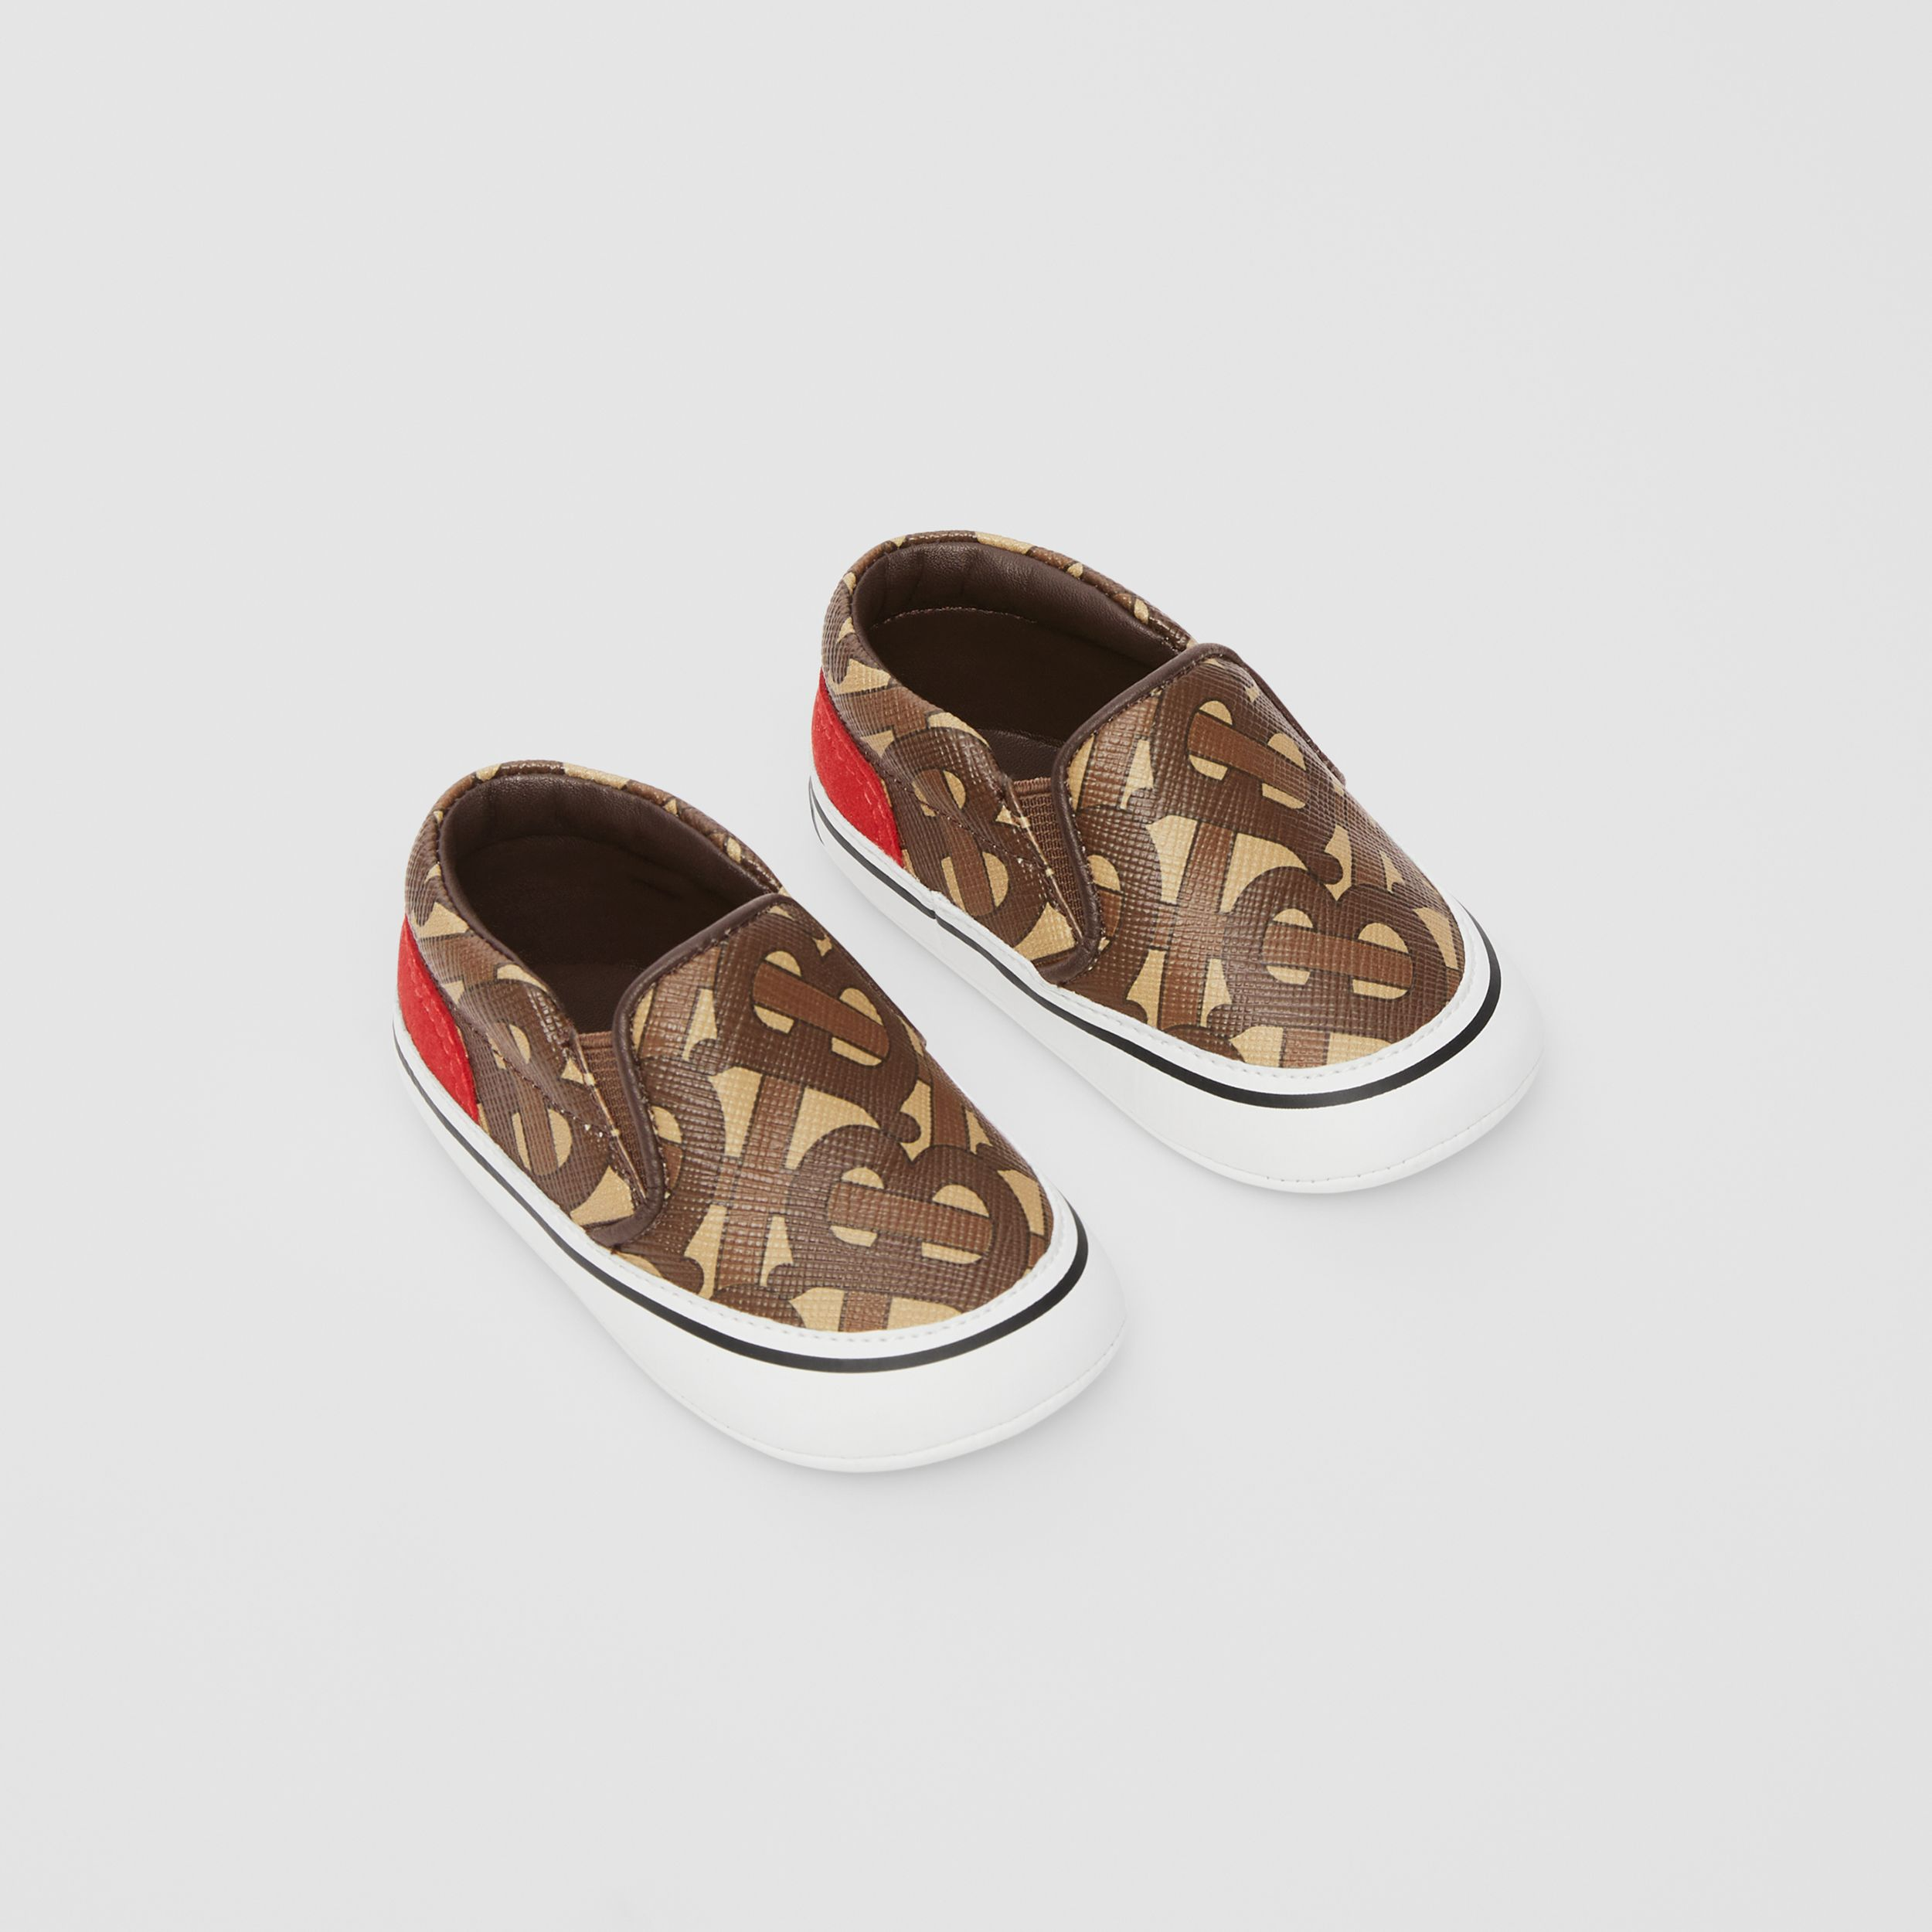 Monogram Print E-canvas Slip-on Shoes in Bridle Brown - Children | Burberry - 1